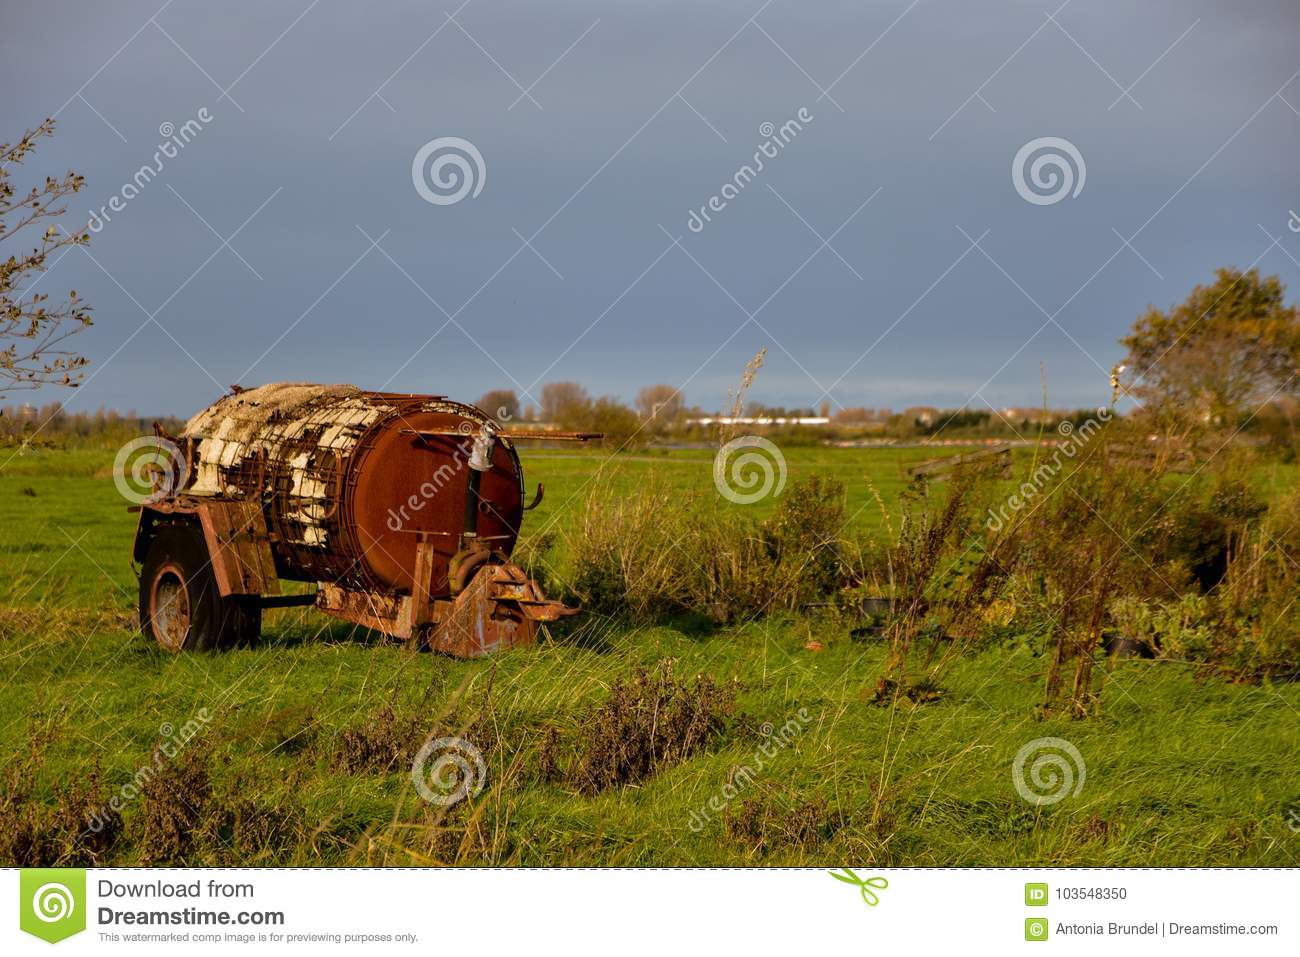 old strawberry tractor manual planting